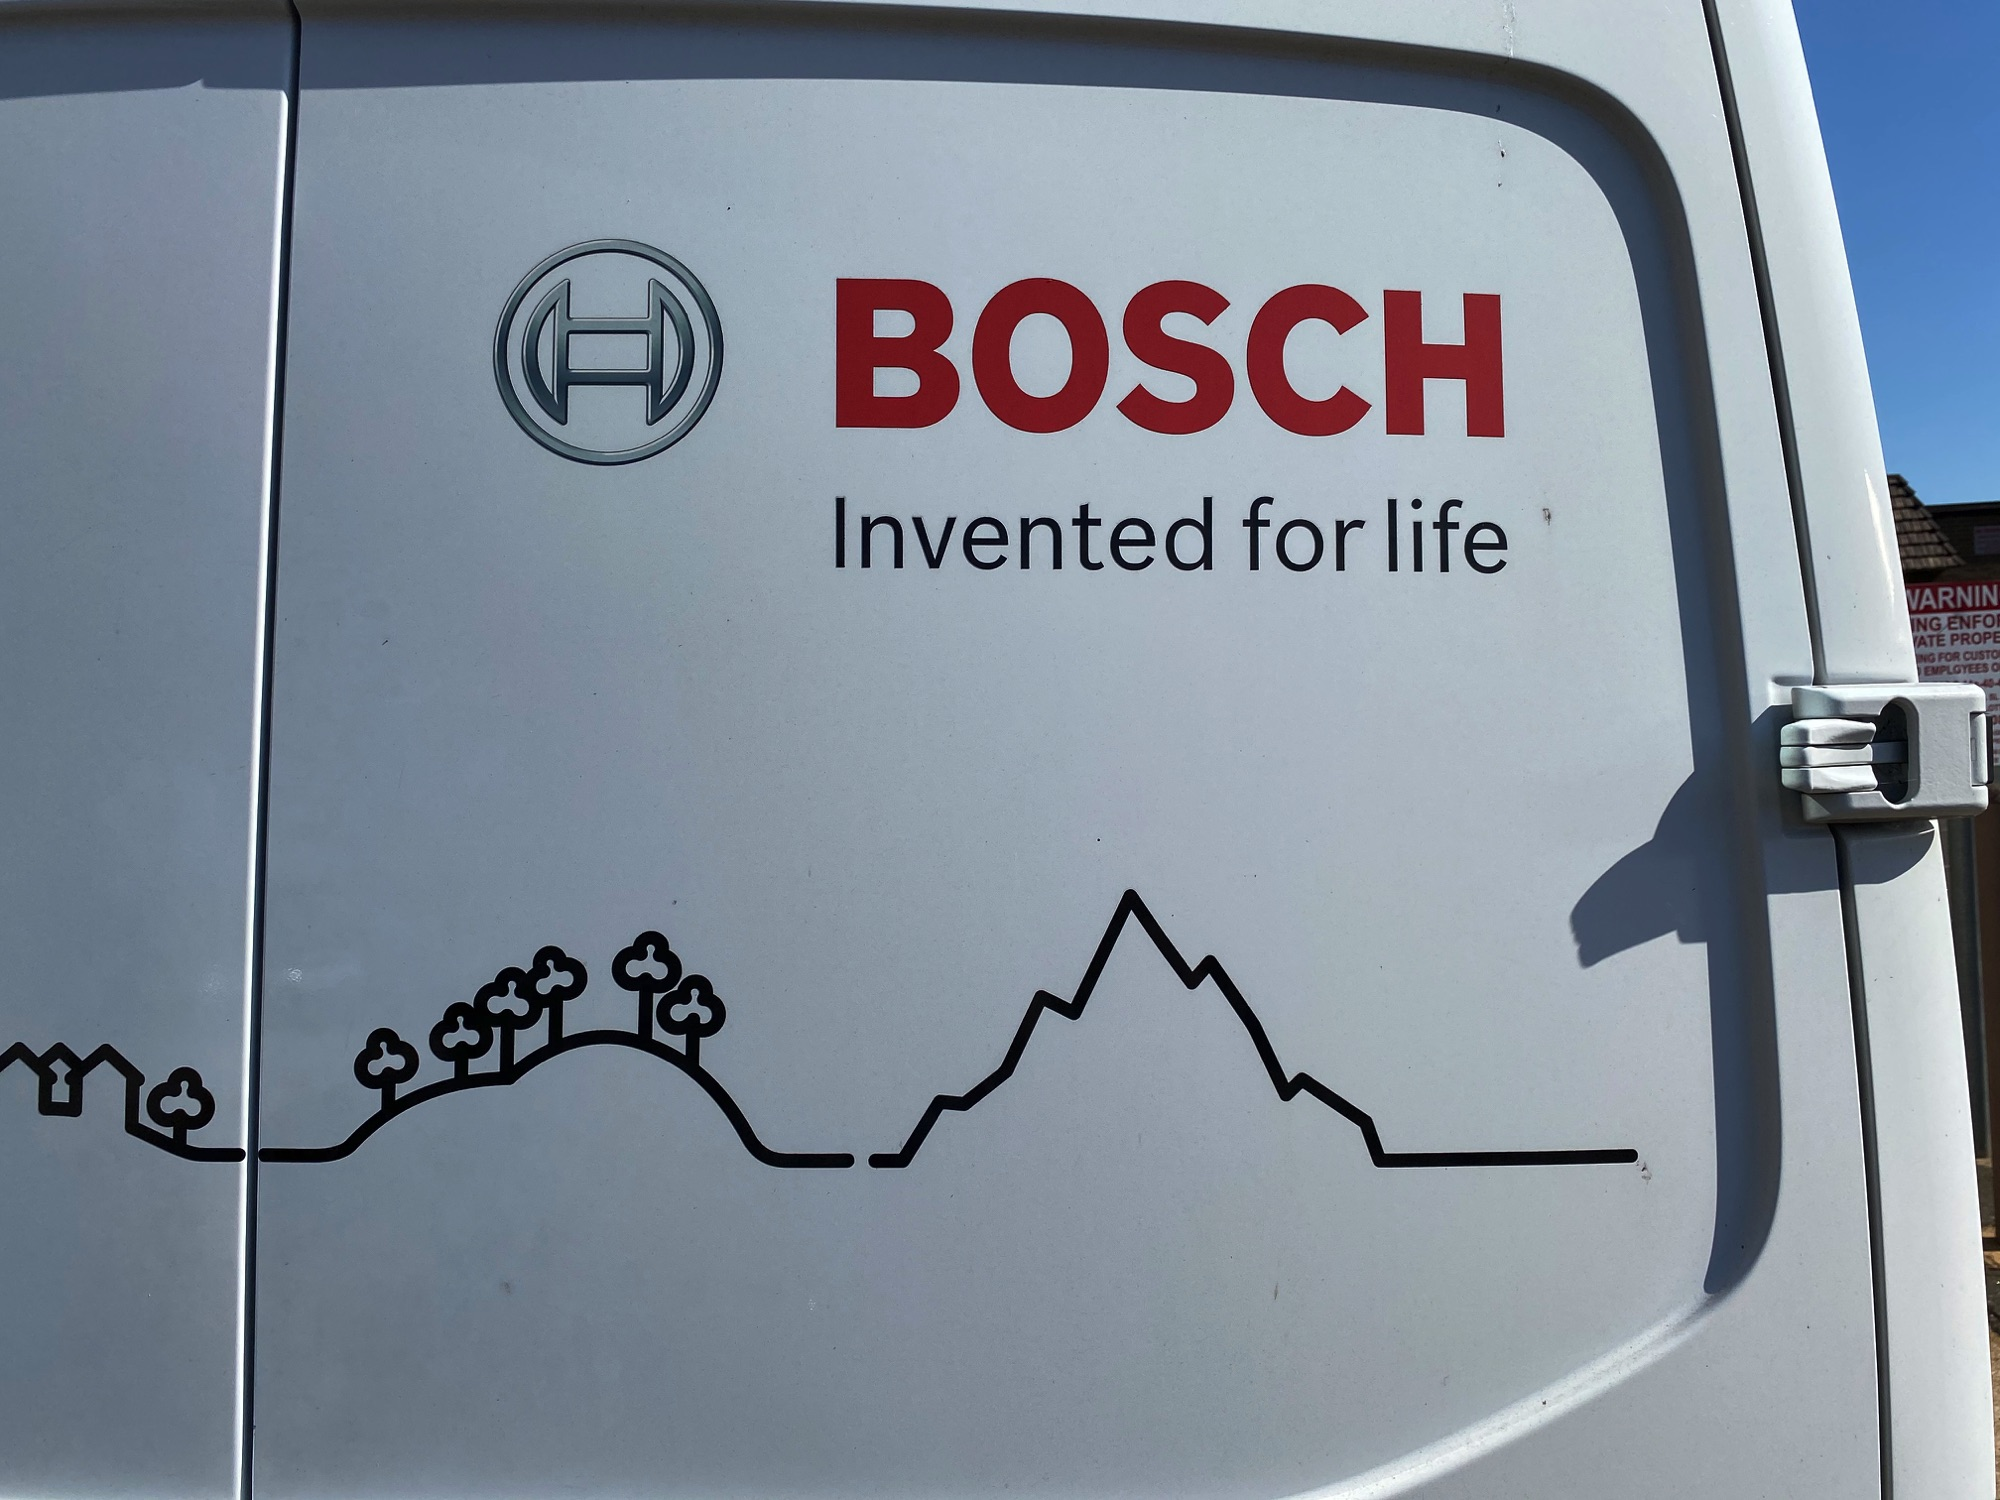 Bosch eBike Systems visits eBike Central in Greensboro and Charlotte NC